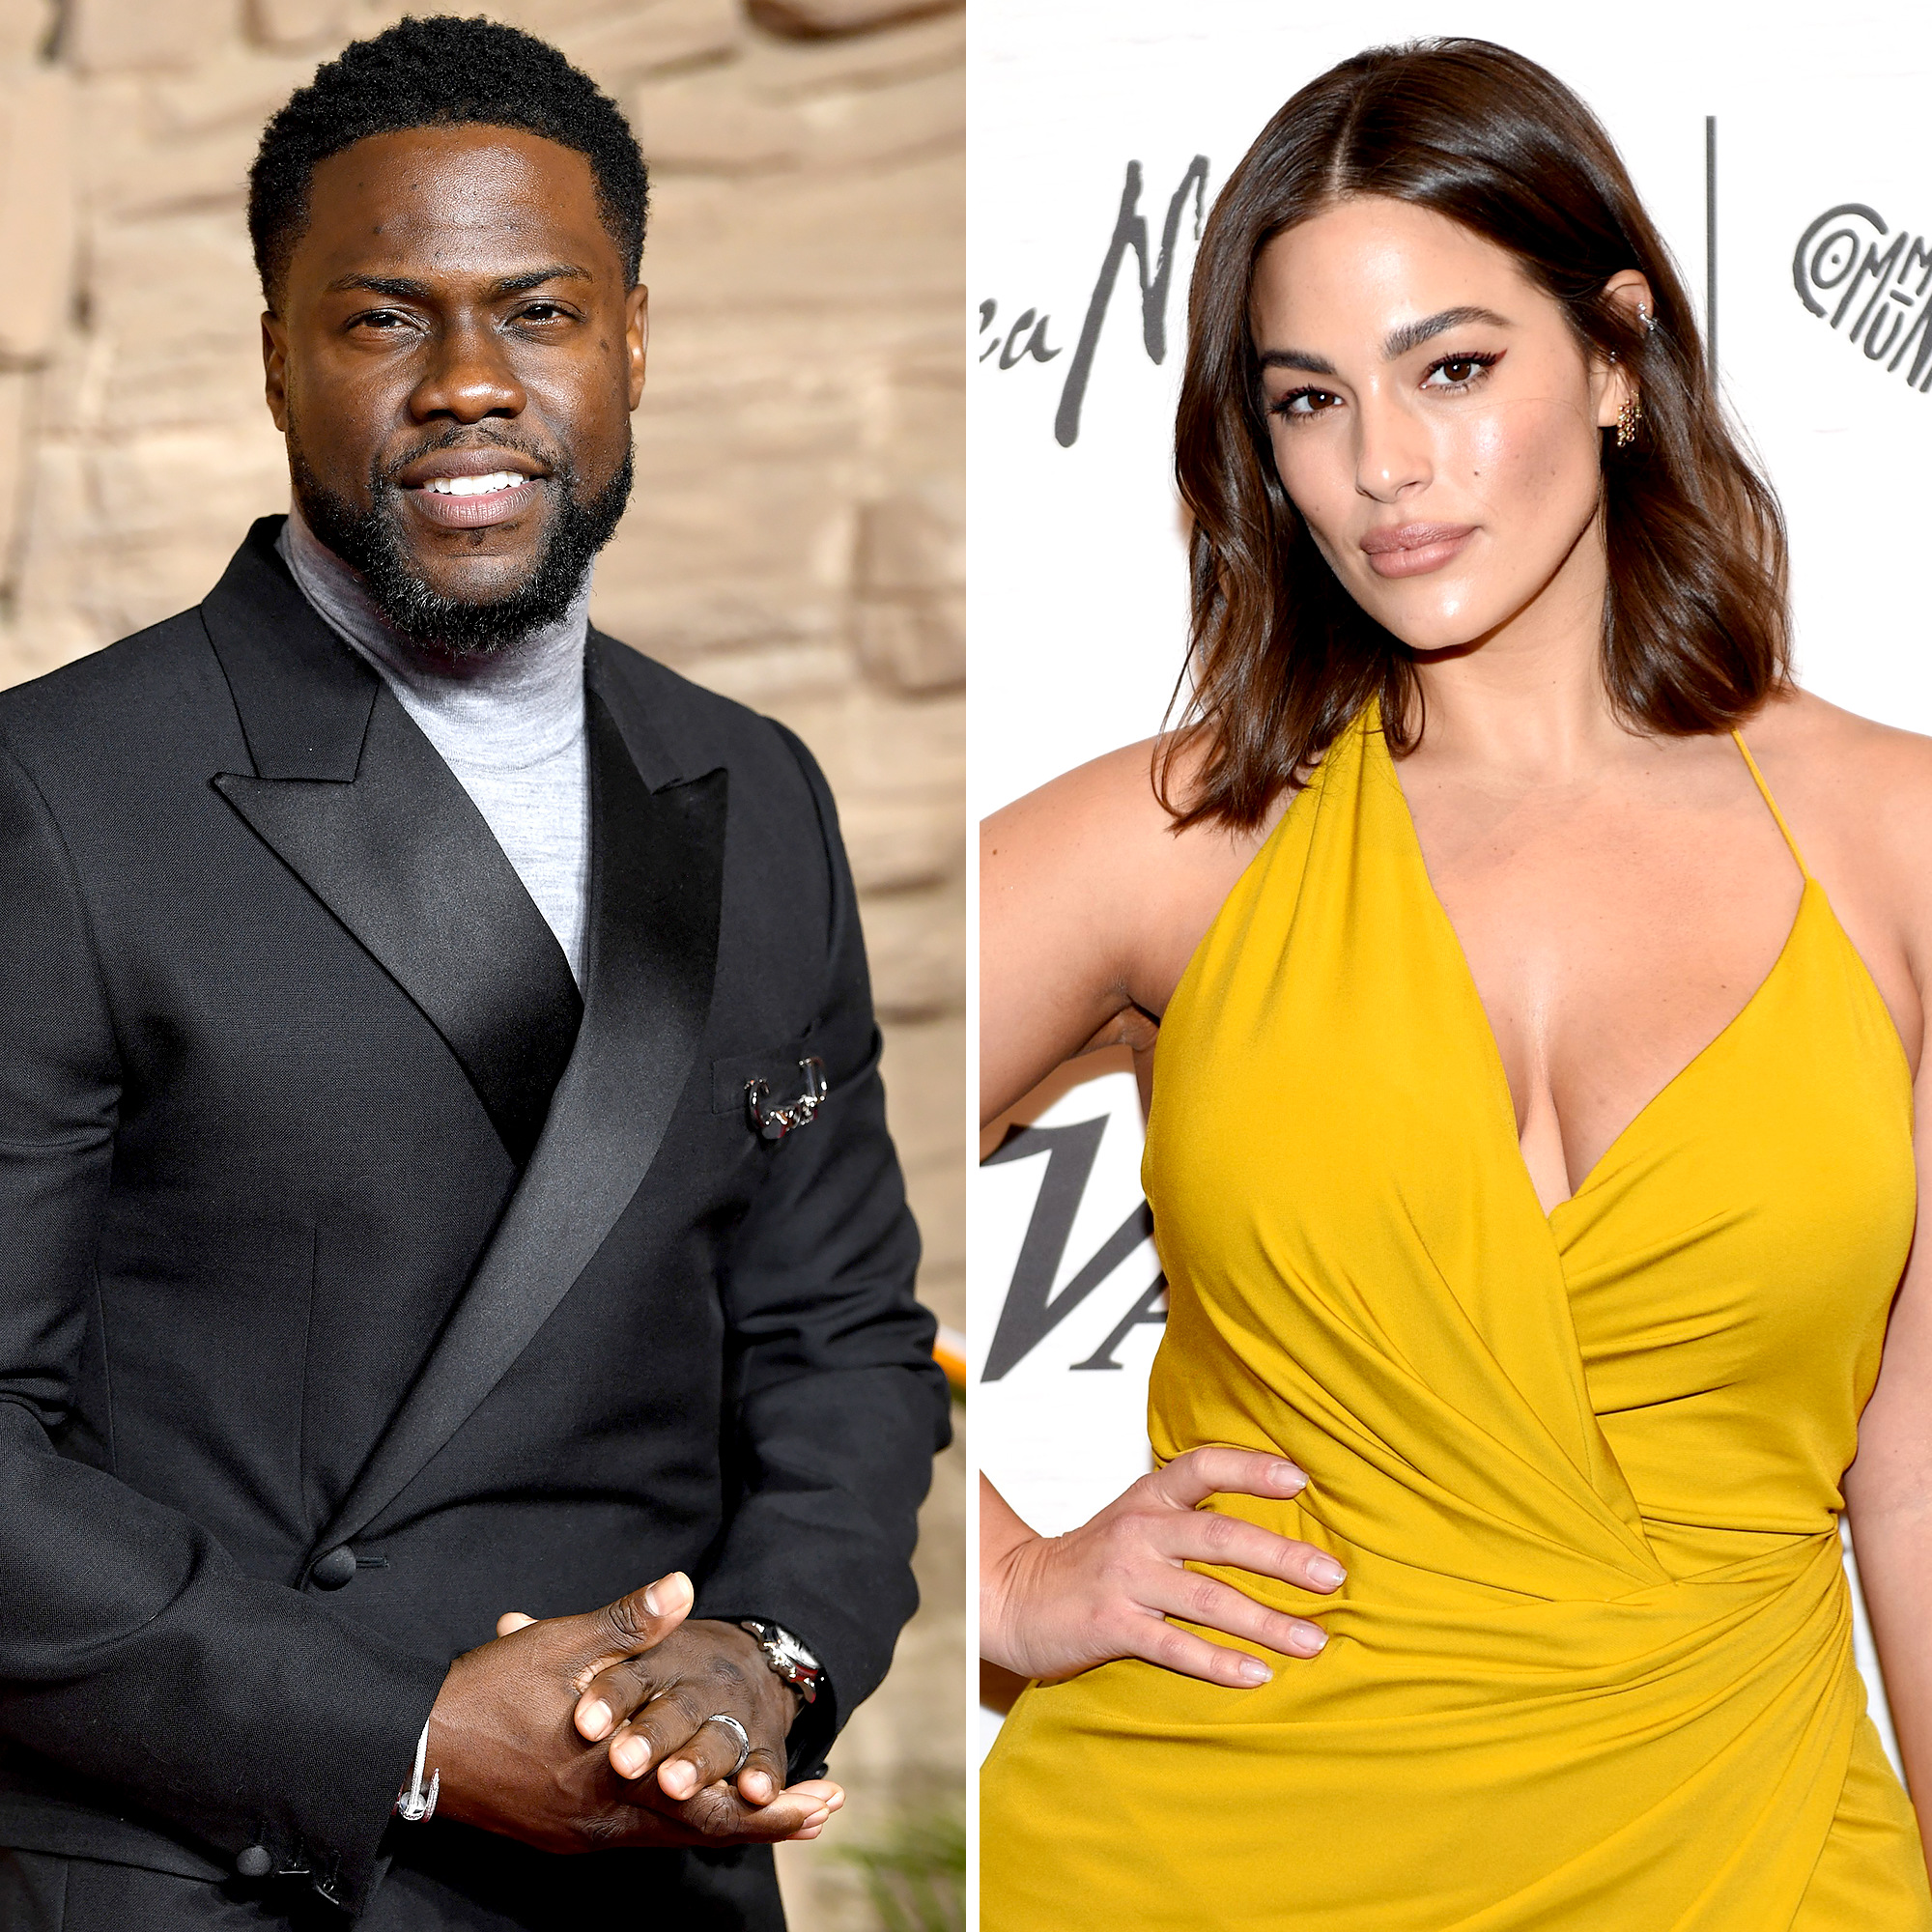 Kevin Hart Ashley Graham and More Stars Share Their Home Workout Routines Amid Coronavirus